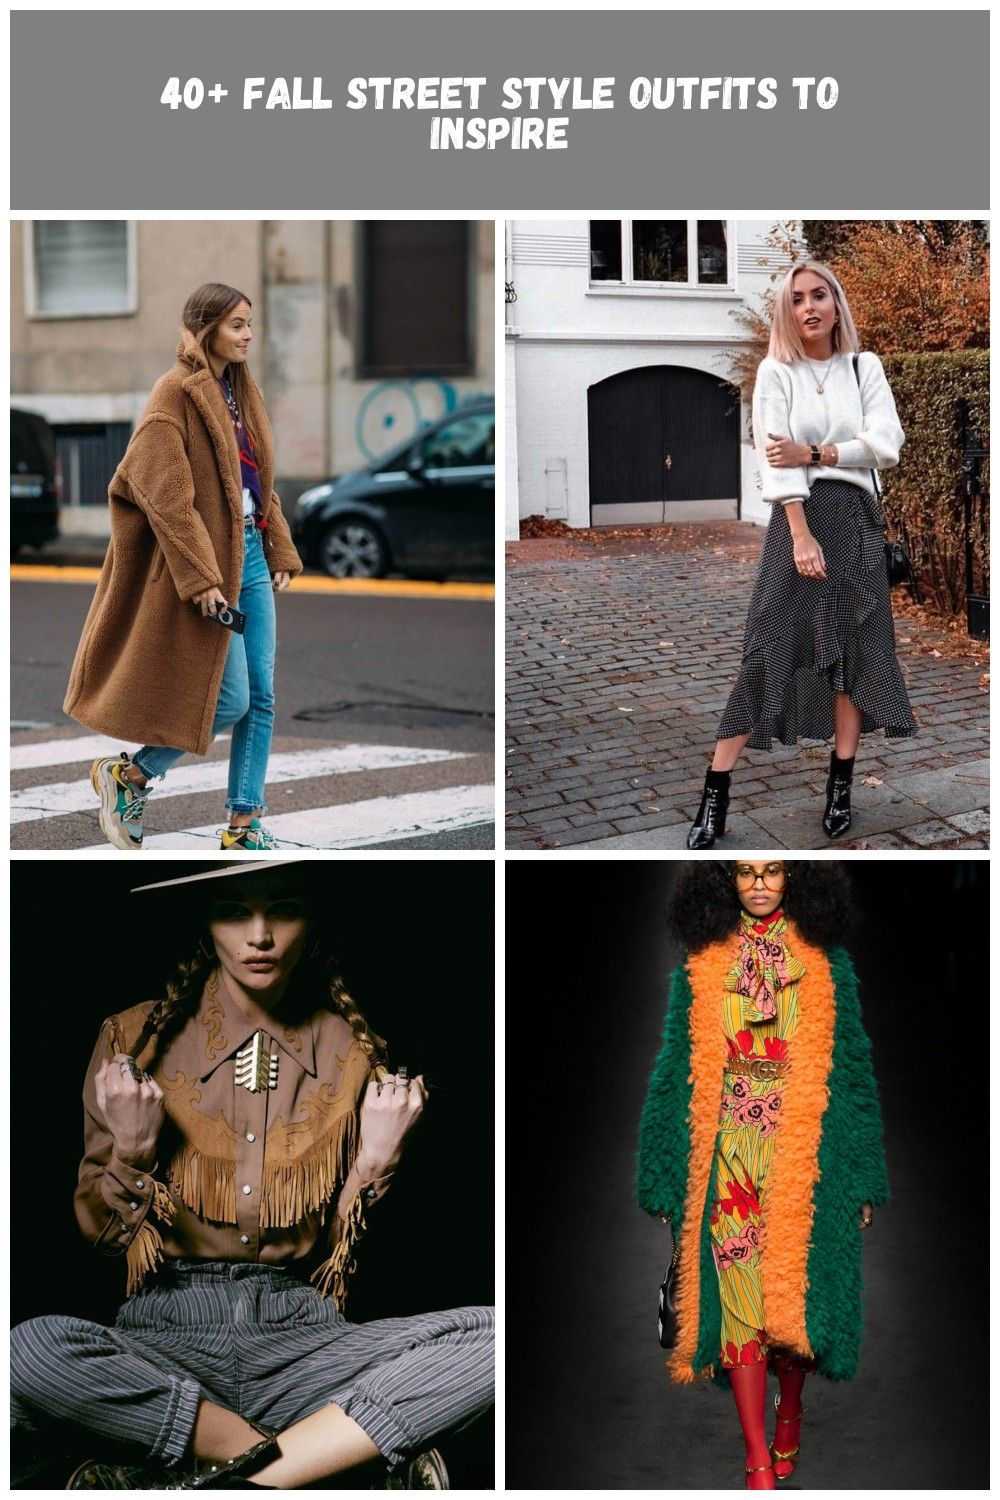 Fall street style fashion  fashion week Pinterest fromluxewithlove Fall fashion Editorial 40 Fall Street Style Outfits to Inspire